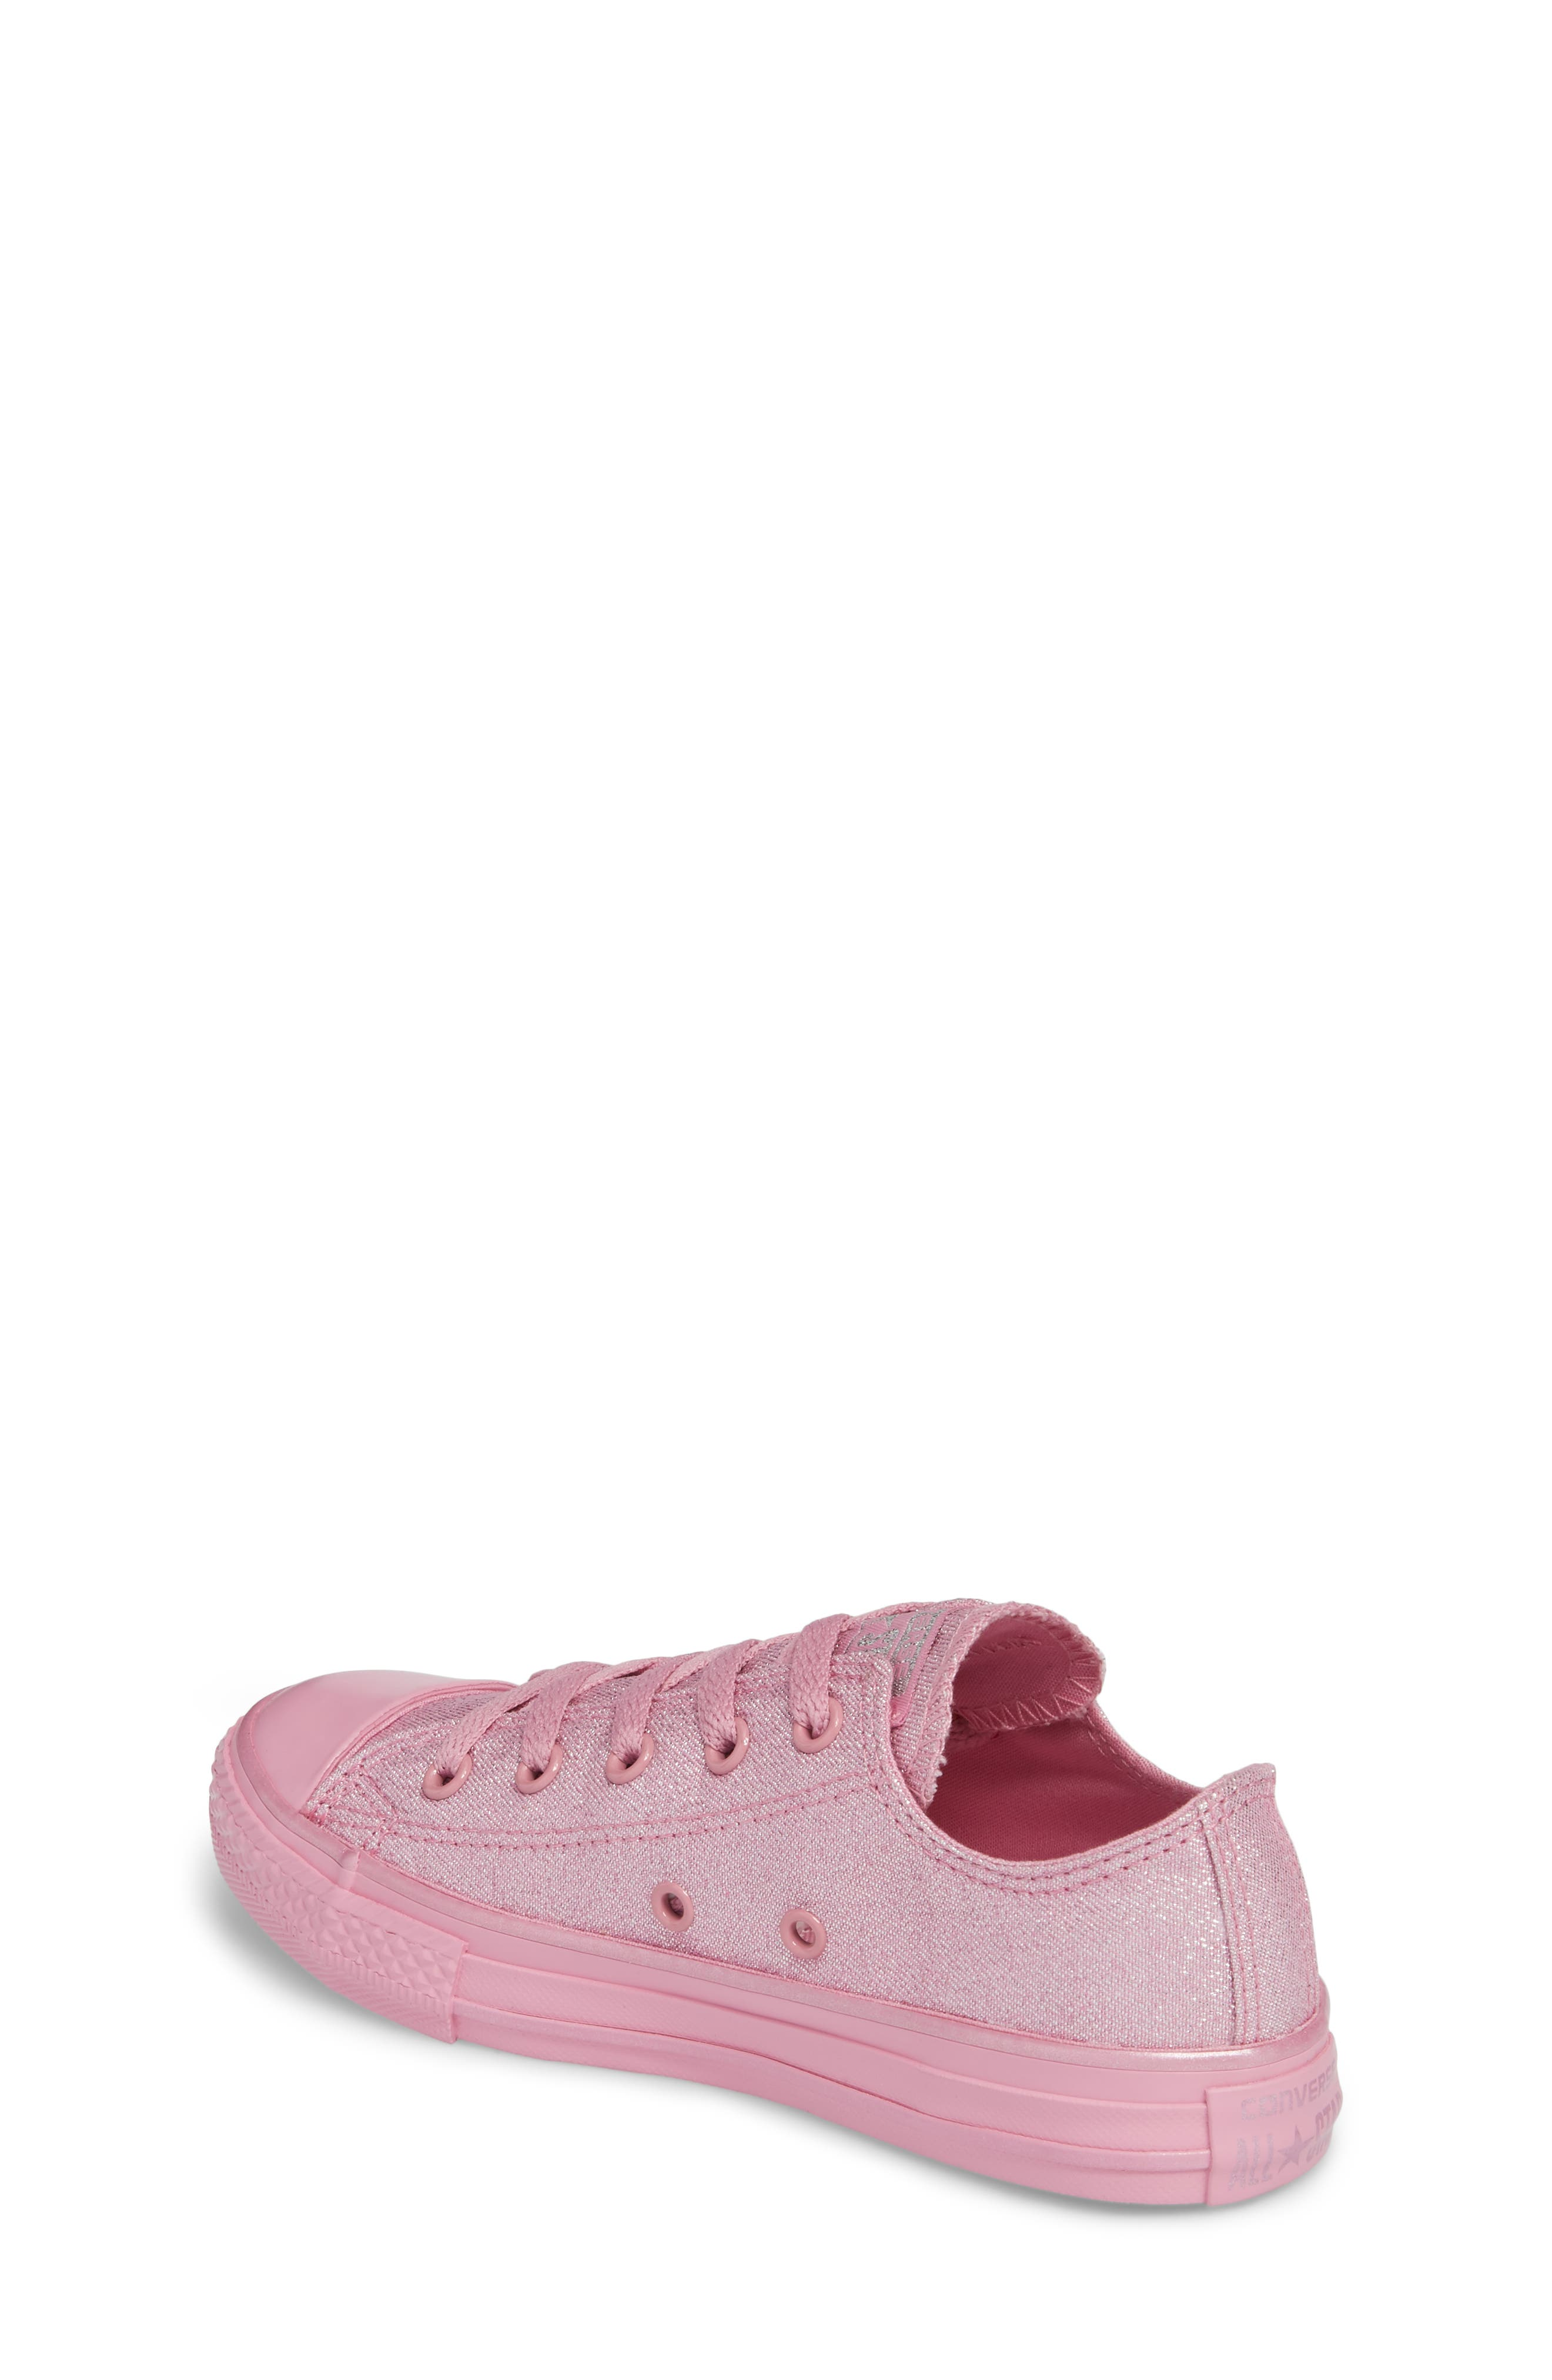 All Star<sup>®</sup> Mono Shine Low Top Sneaker,                             Alternate thumbnail 2, color,                             650